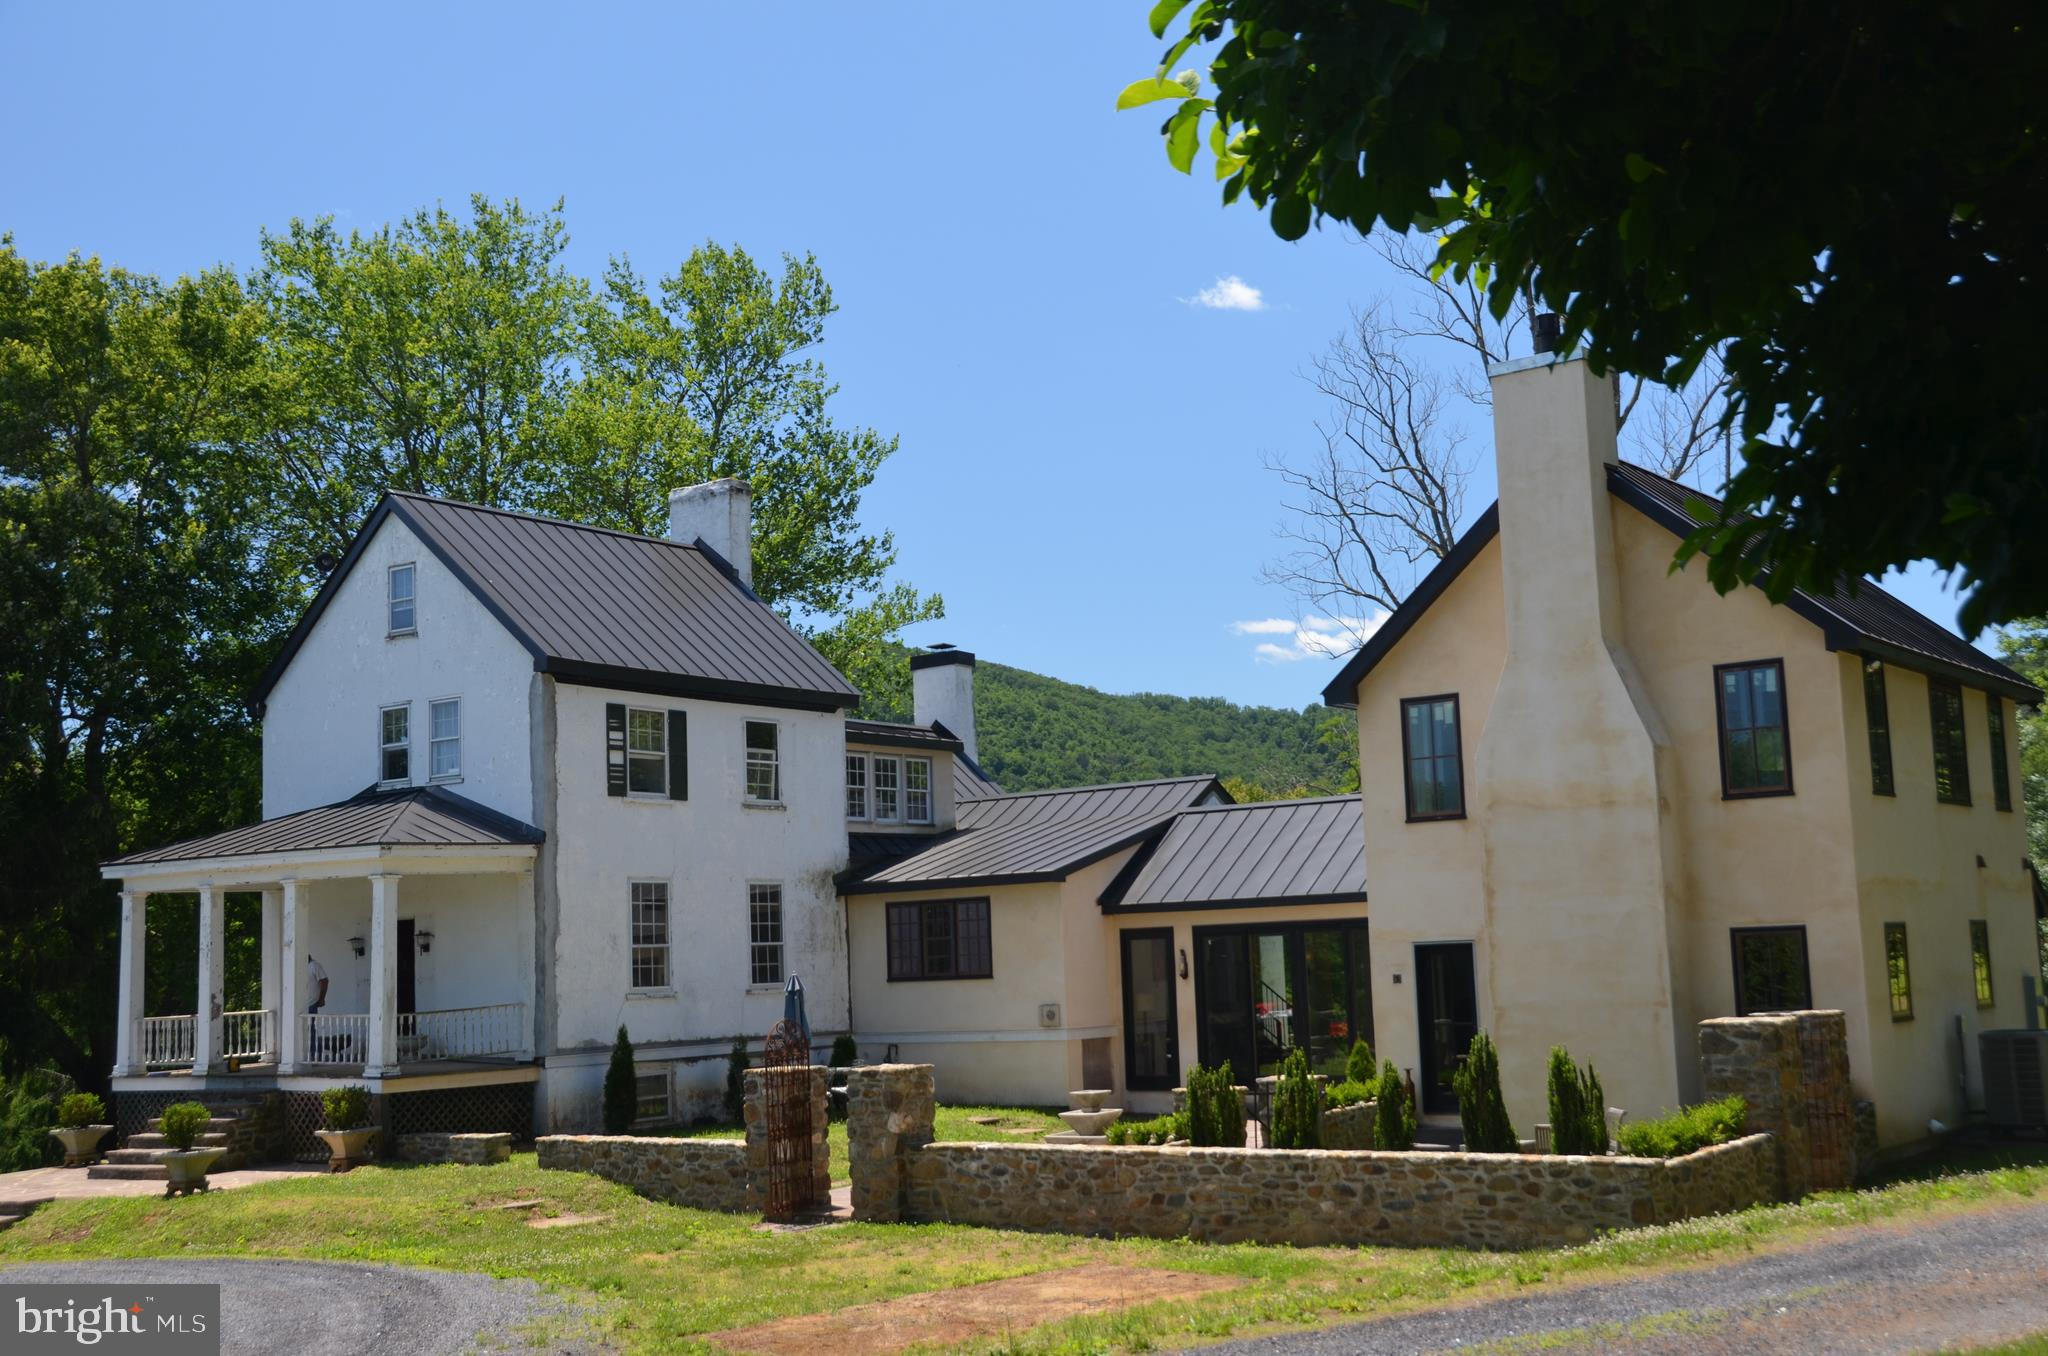 11116 SPRING VALLEY LANE, DELAPLANE, VA 20144